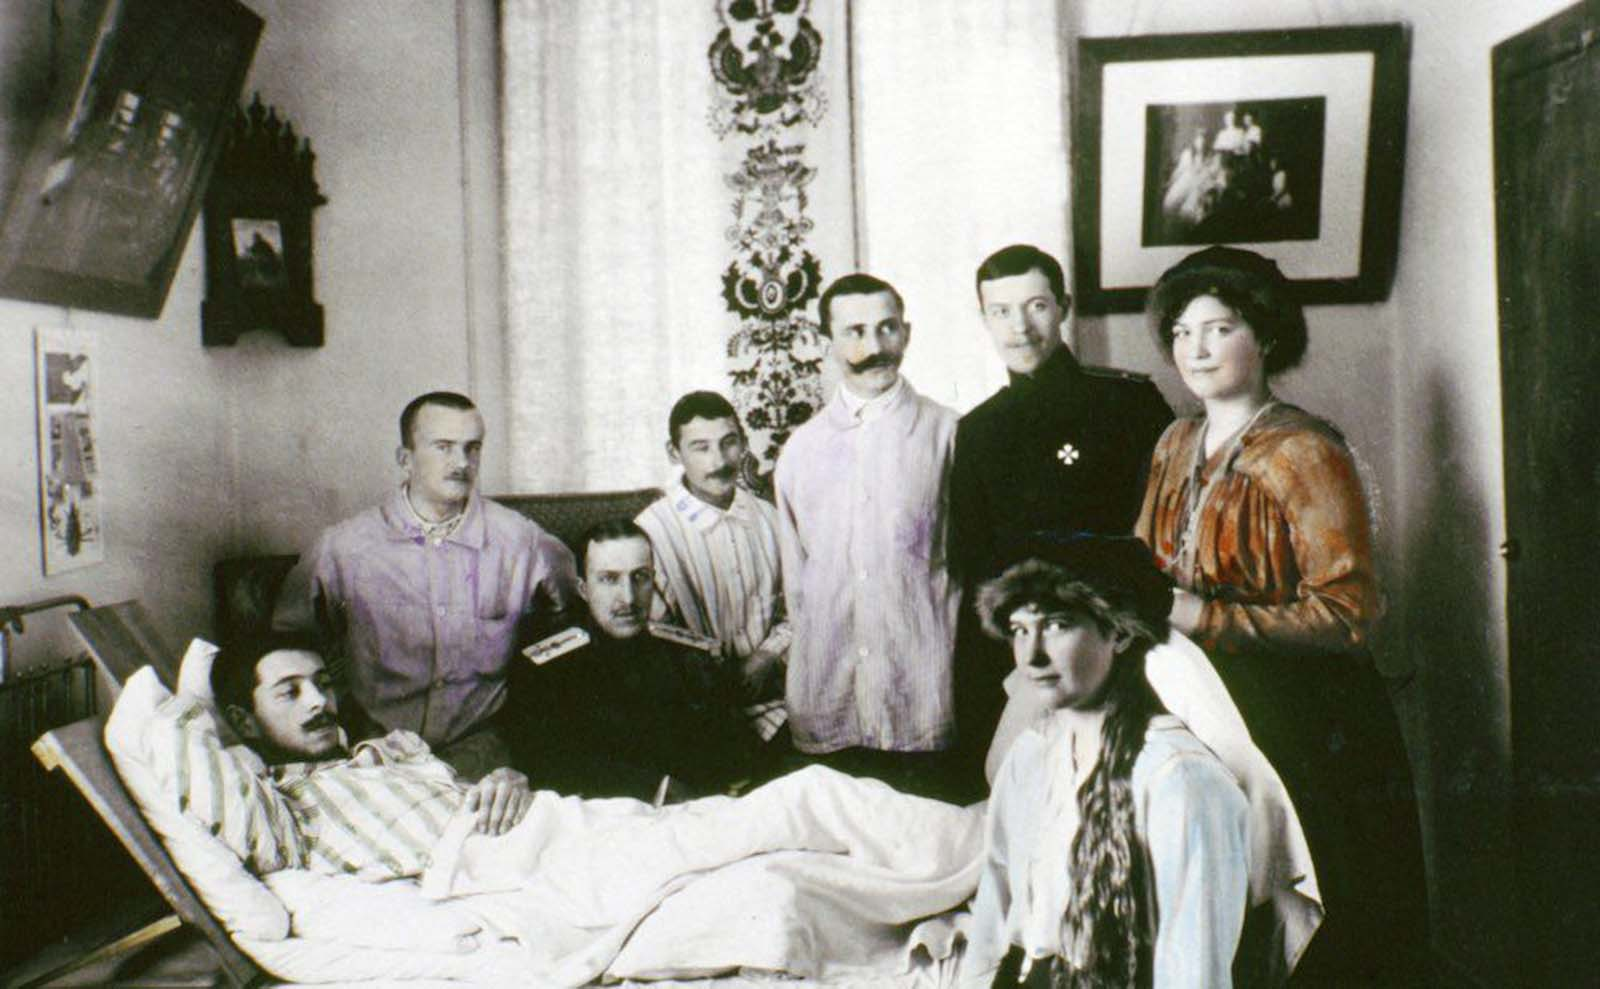 Anastasia and Maria visit wounded soldiers in hospital during World War I.